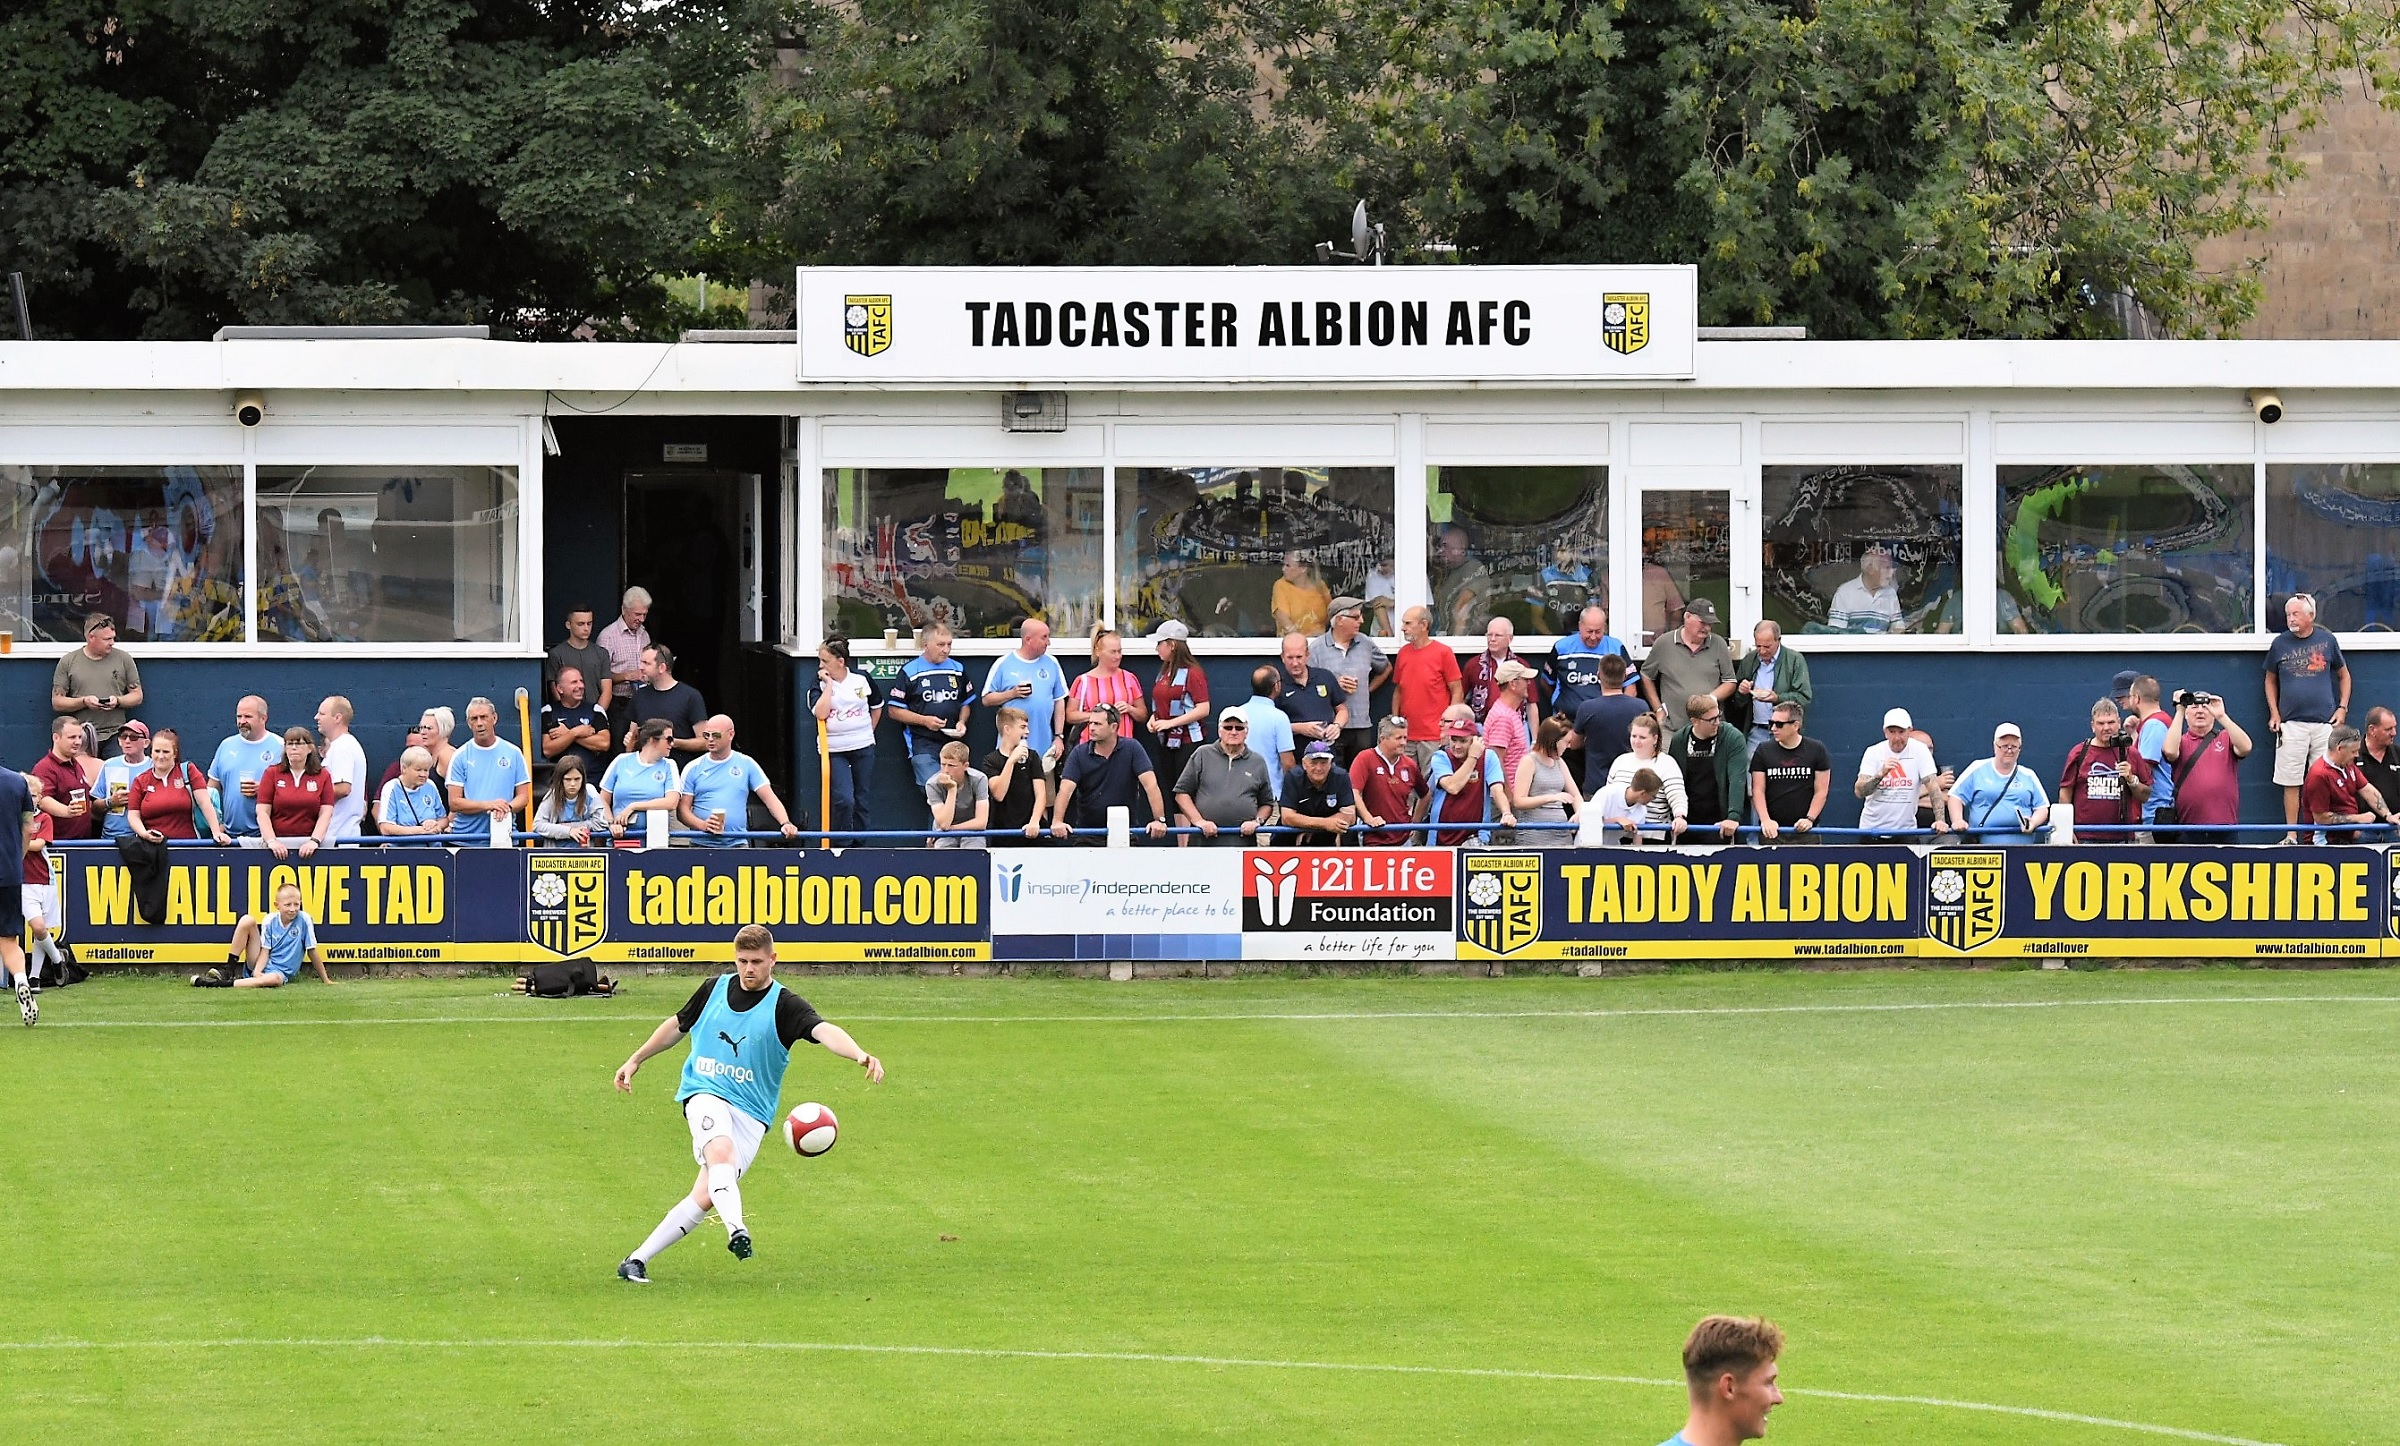 Mariners to travel to Tadcaster Albion in Integro Cup